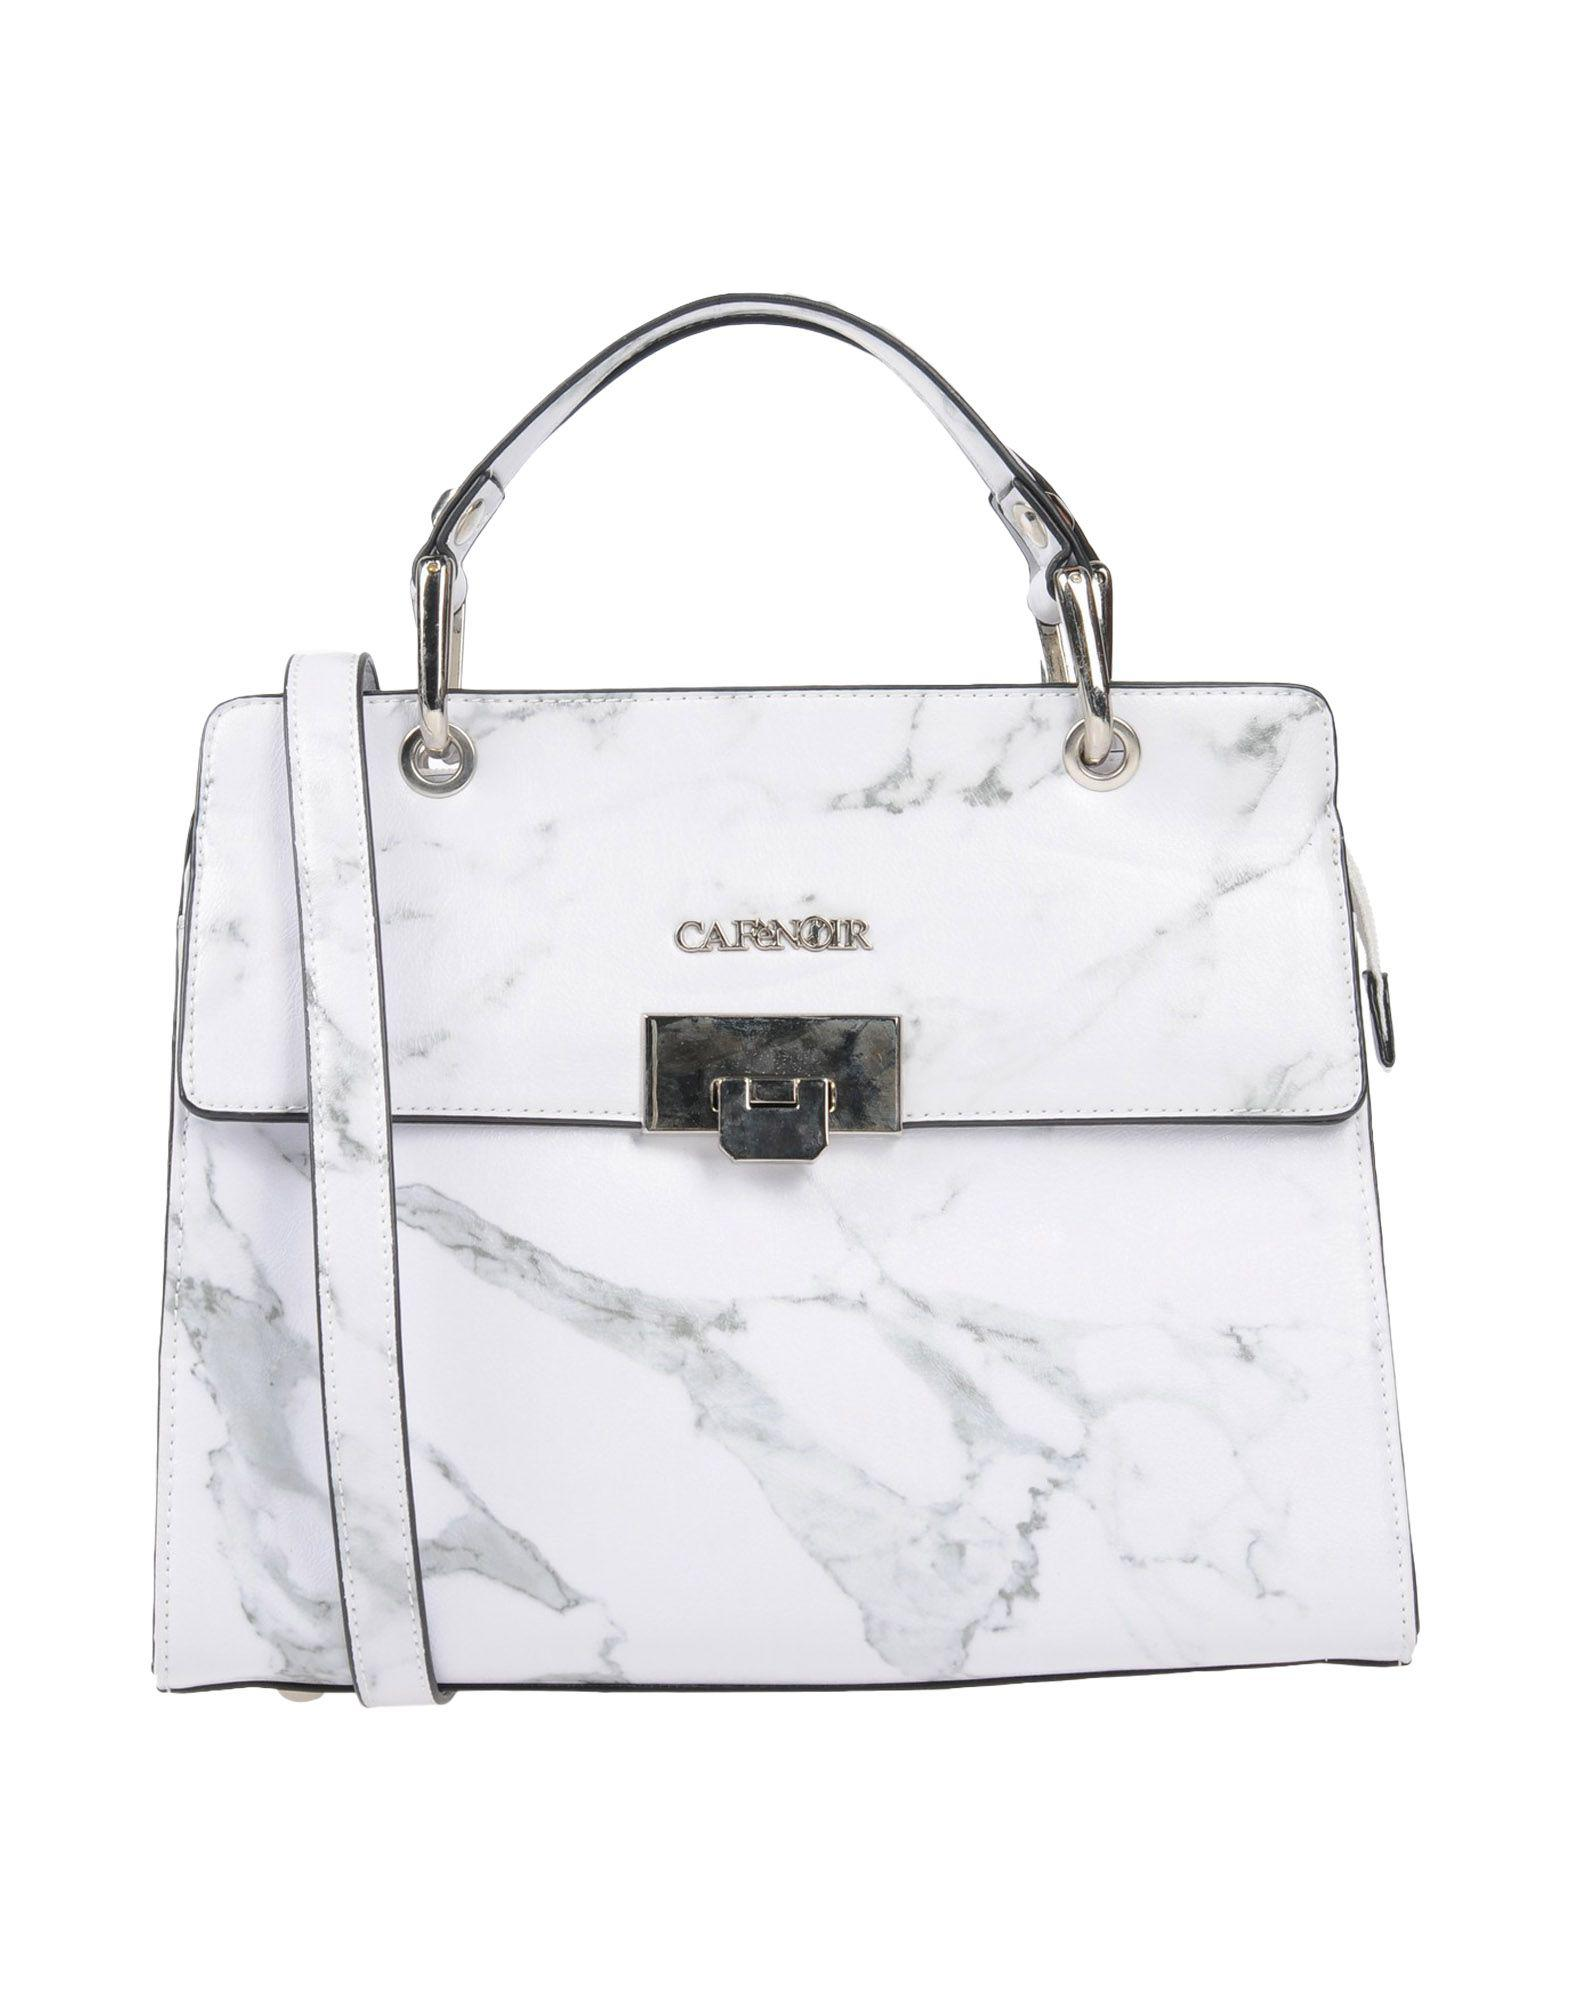 BAGS - Handbags Caf</ototo></div>                                   <span></span>                               </div>             <div>                                     <div>                                             <div>                                                     <div>                                                             <div>                                                                     <ul>                                                                             <li>                                         <label>                                             Product Reviews                                         </label>                                                                                     <ul>                                                                                             <li>                                                                                                     <ul>                                                                                                             <li>                                                                                                                   <a href=